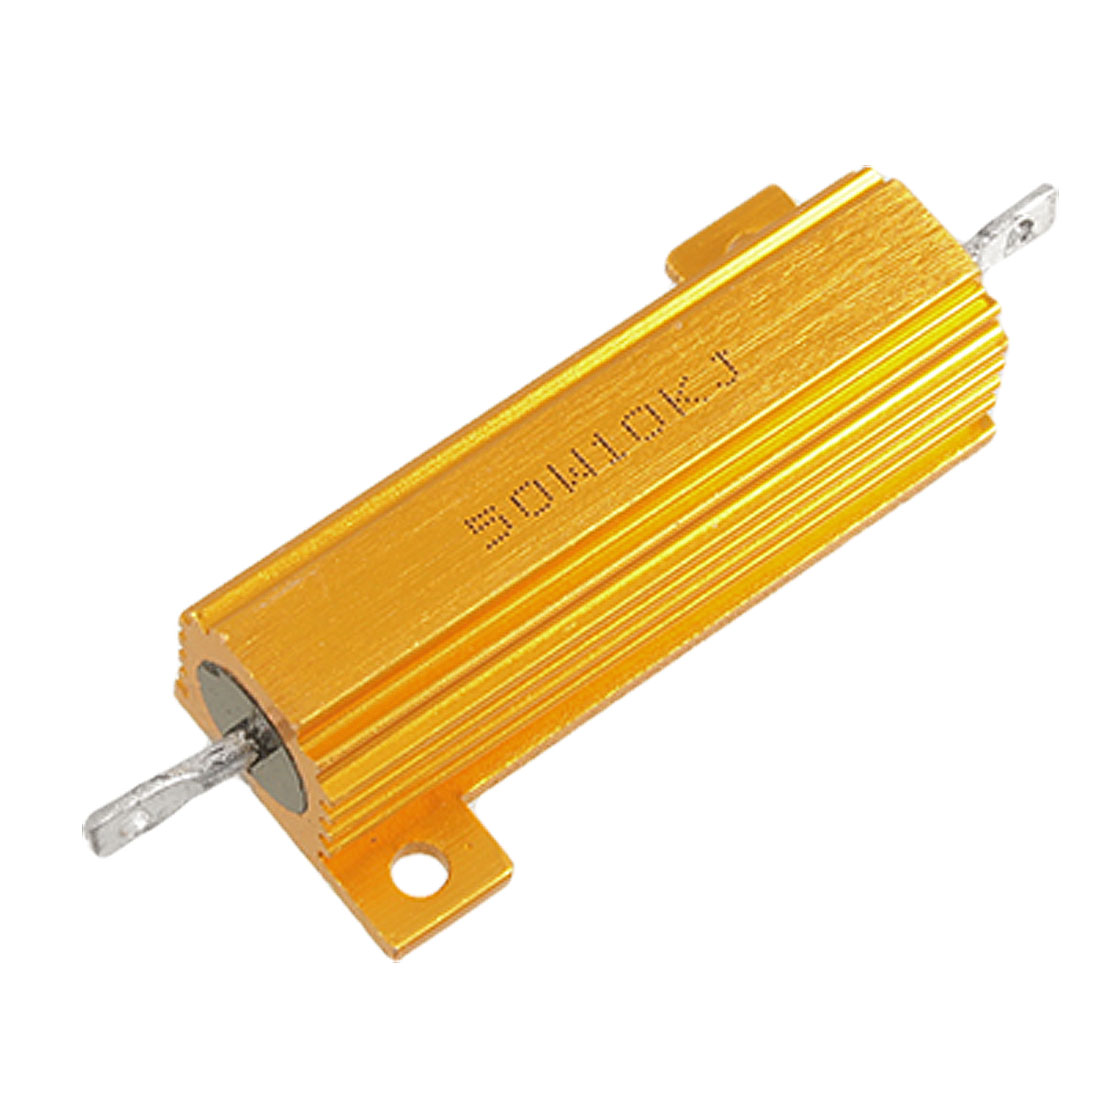 Chassis Mount Wirewound Aluminium Housed Resistor 5% 50W 10K Ohm Gold Tone